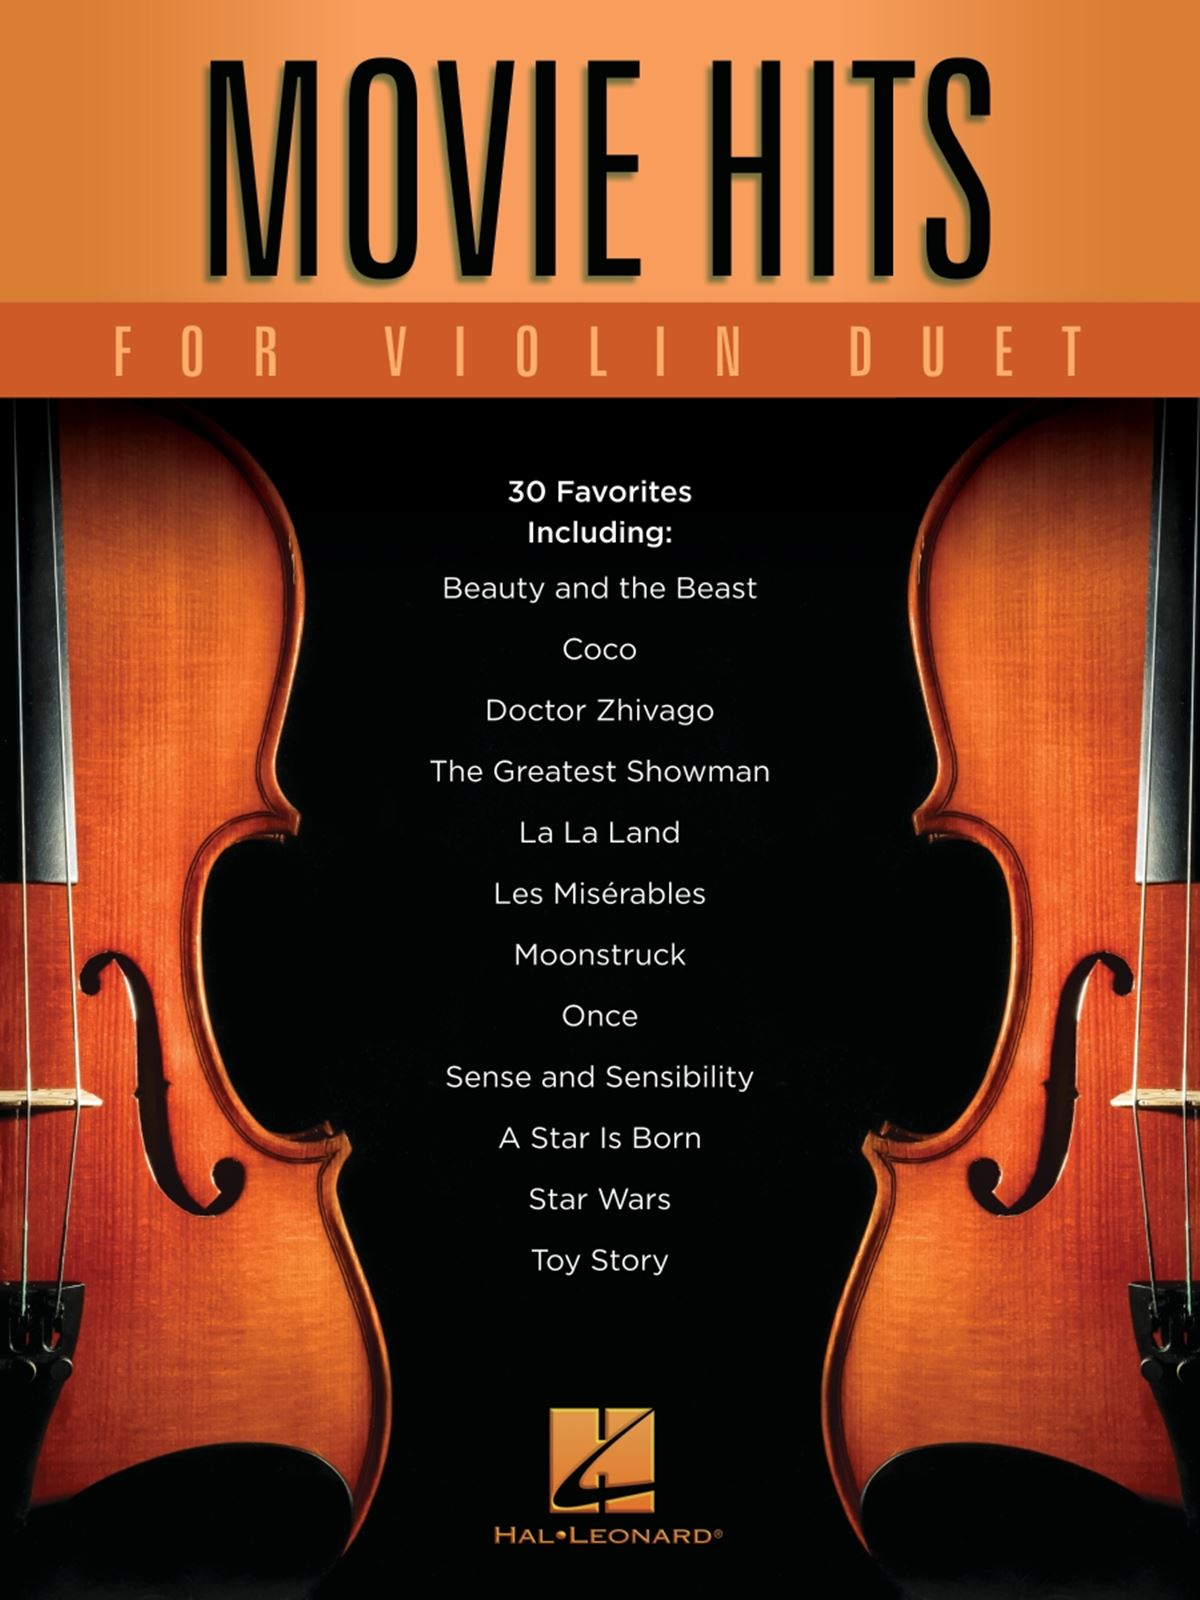 Movie Hits for Violin Duet: Mixed String Duet: Instrumental Album